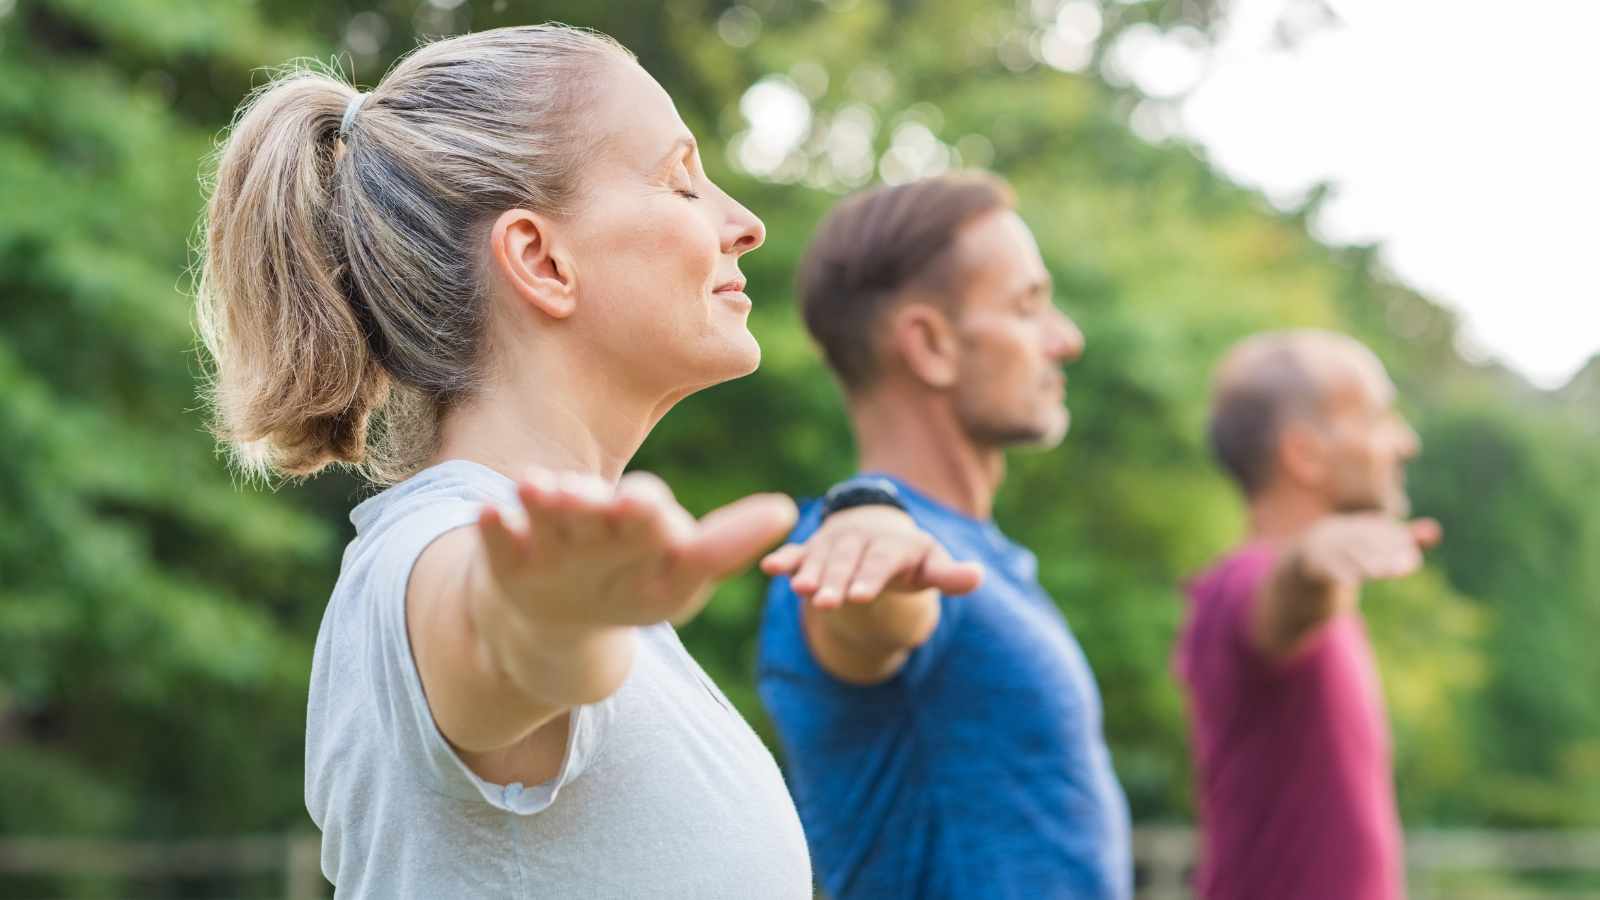 Group of senior people with closed eyes stretching arms at park